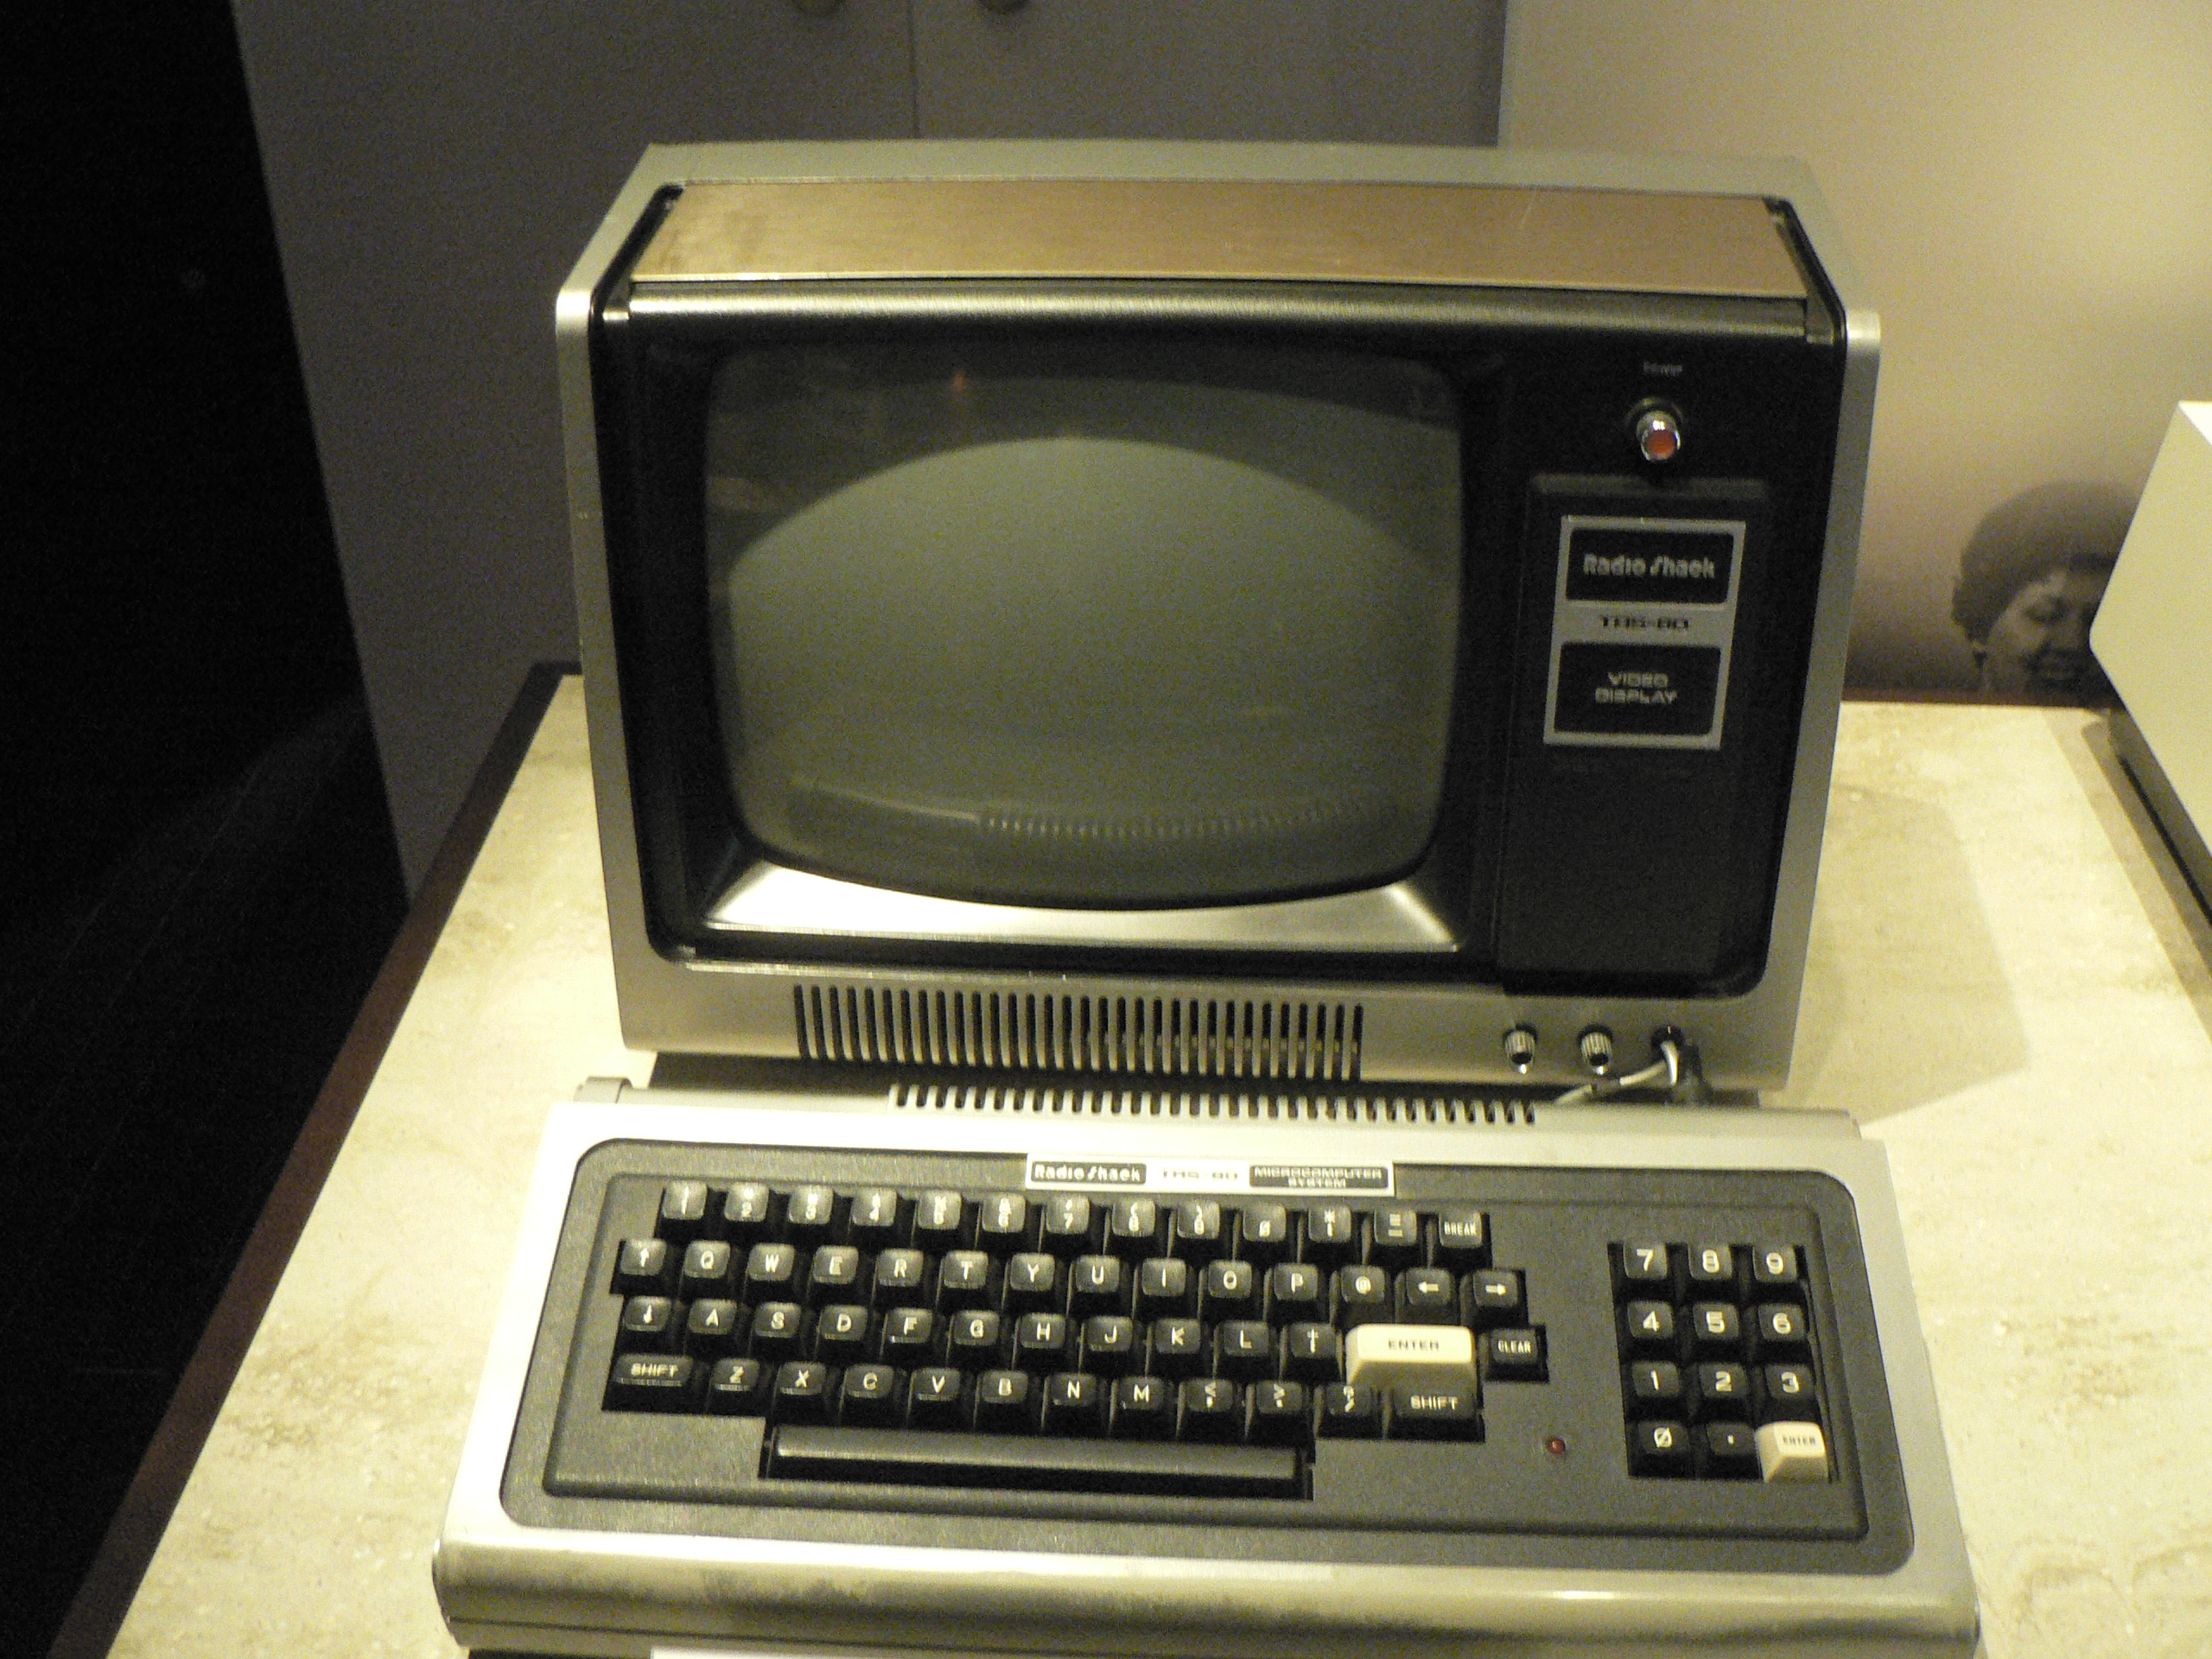 Computer History Museum: the TRS-80, the first computer I owned ...